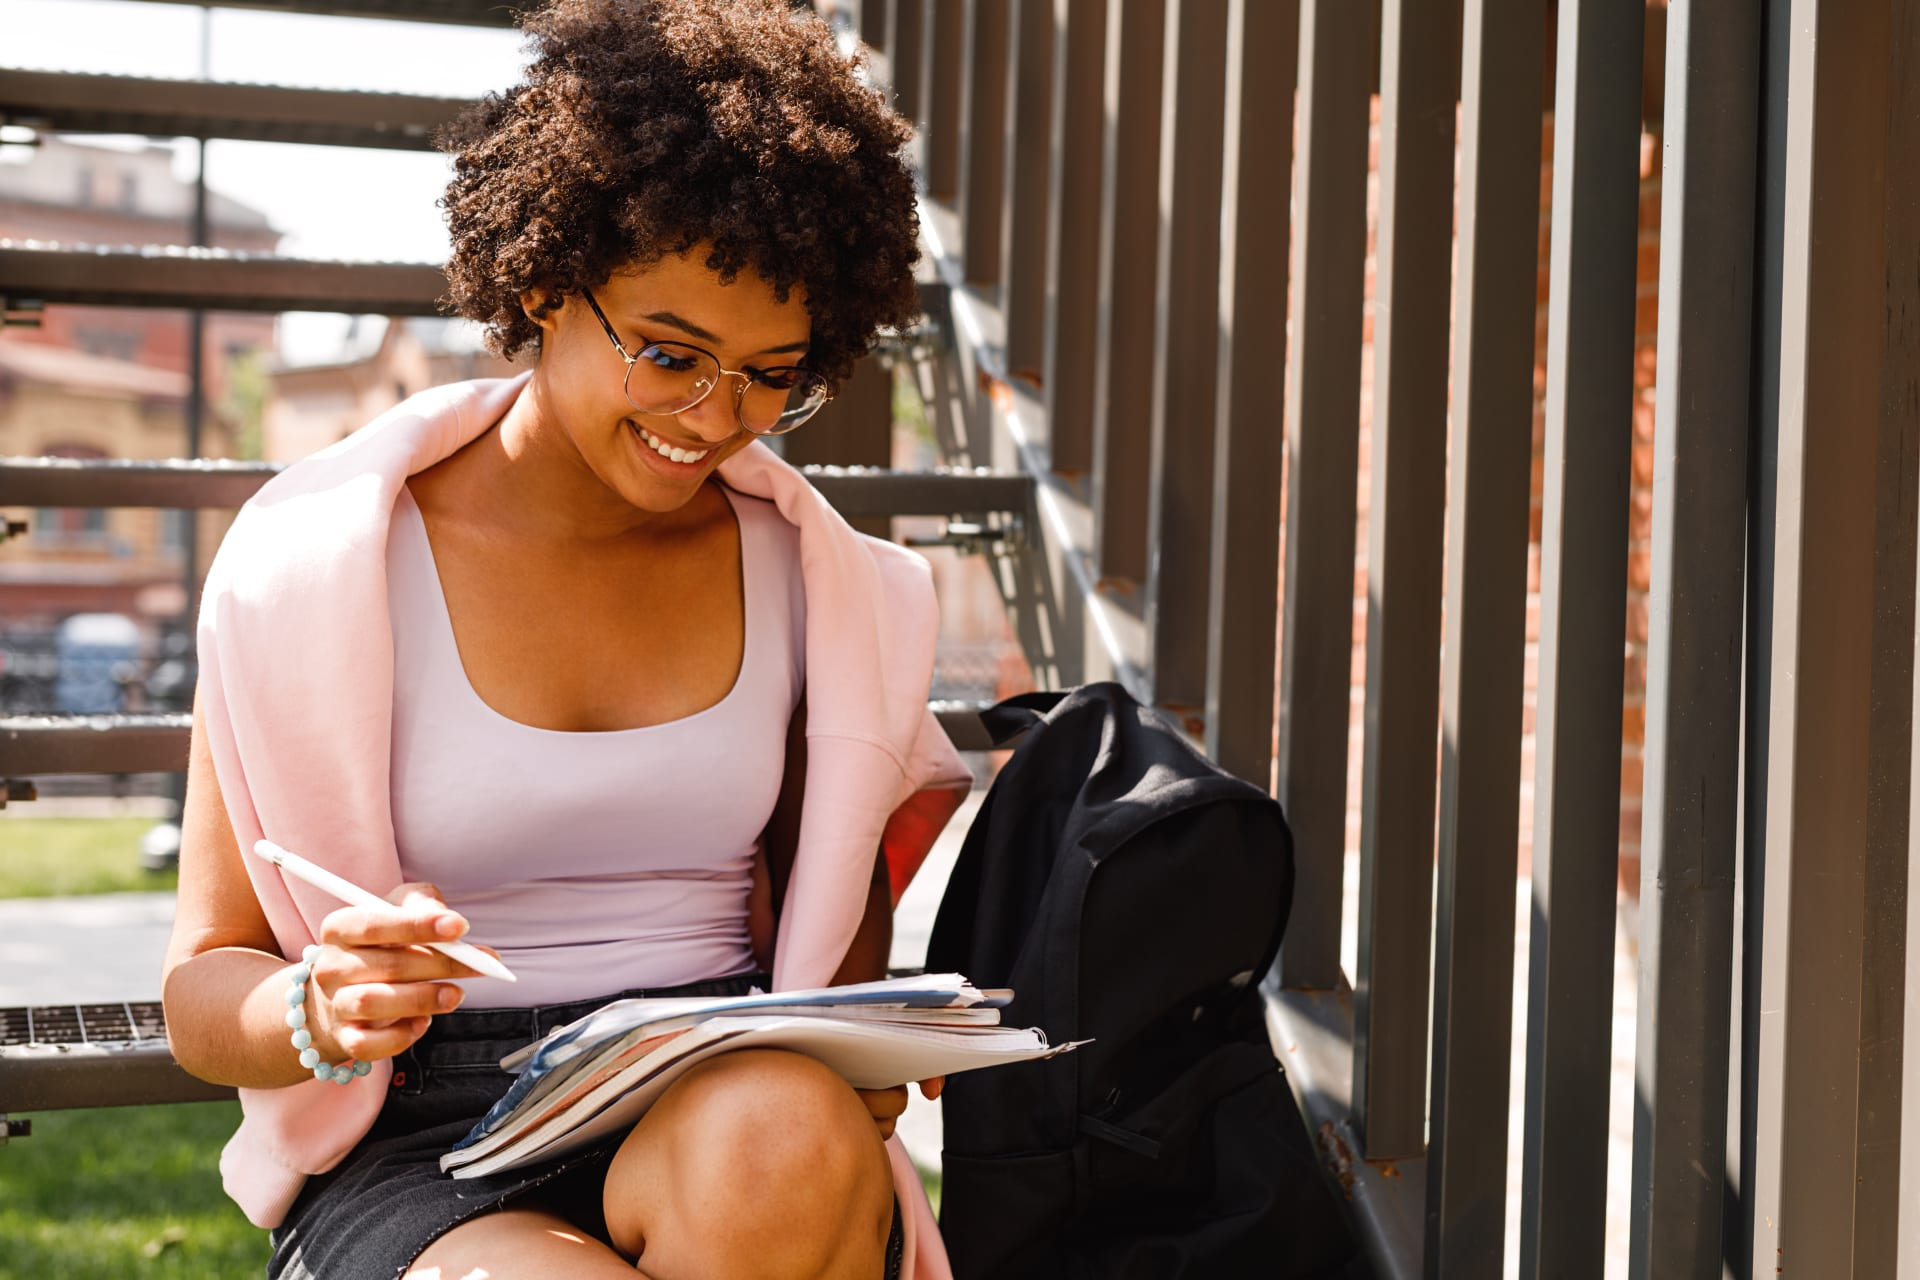 Girl smiling and sitting at the stairs while looking at her papers